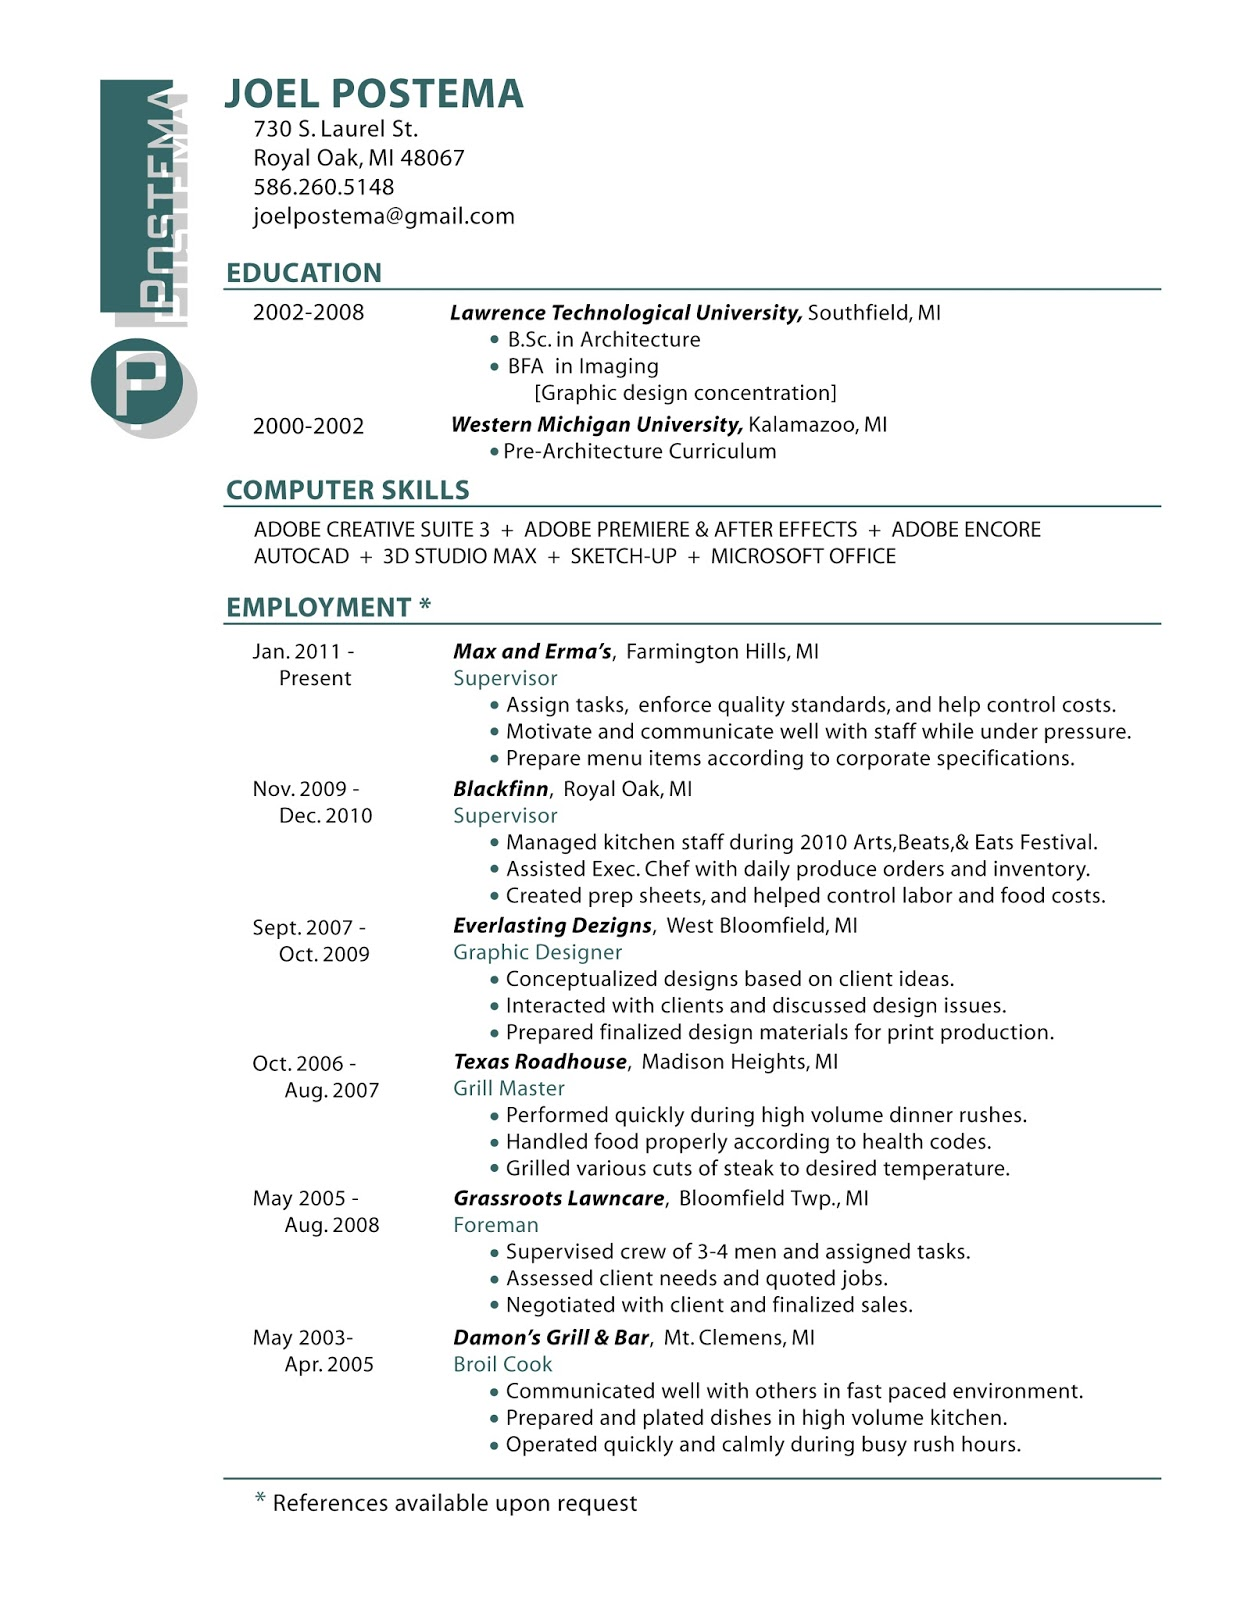 professional copywriter resume web page resume copywriter brand strategist communications copywriter brand strategist communications alchemist resume web page designer